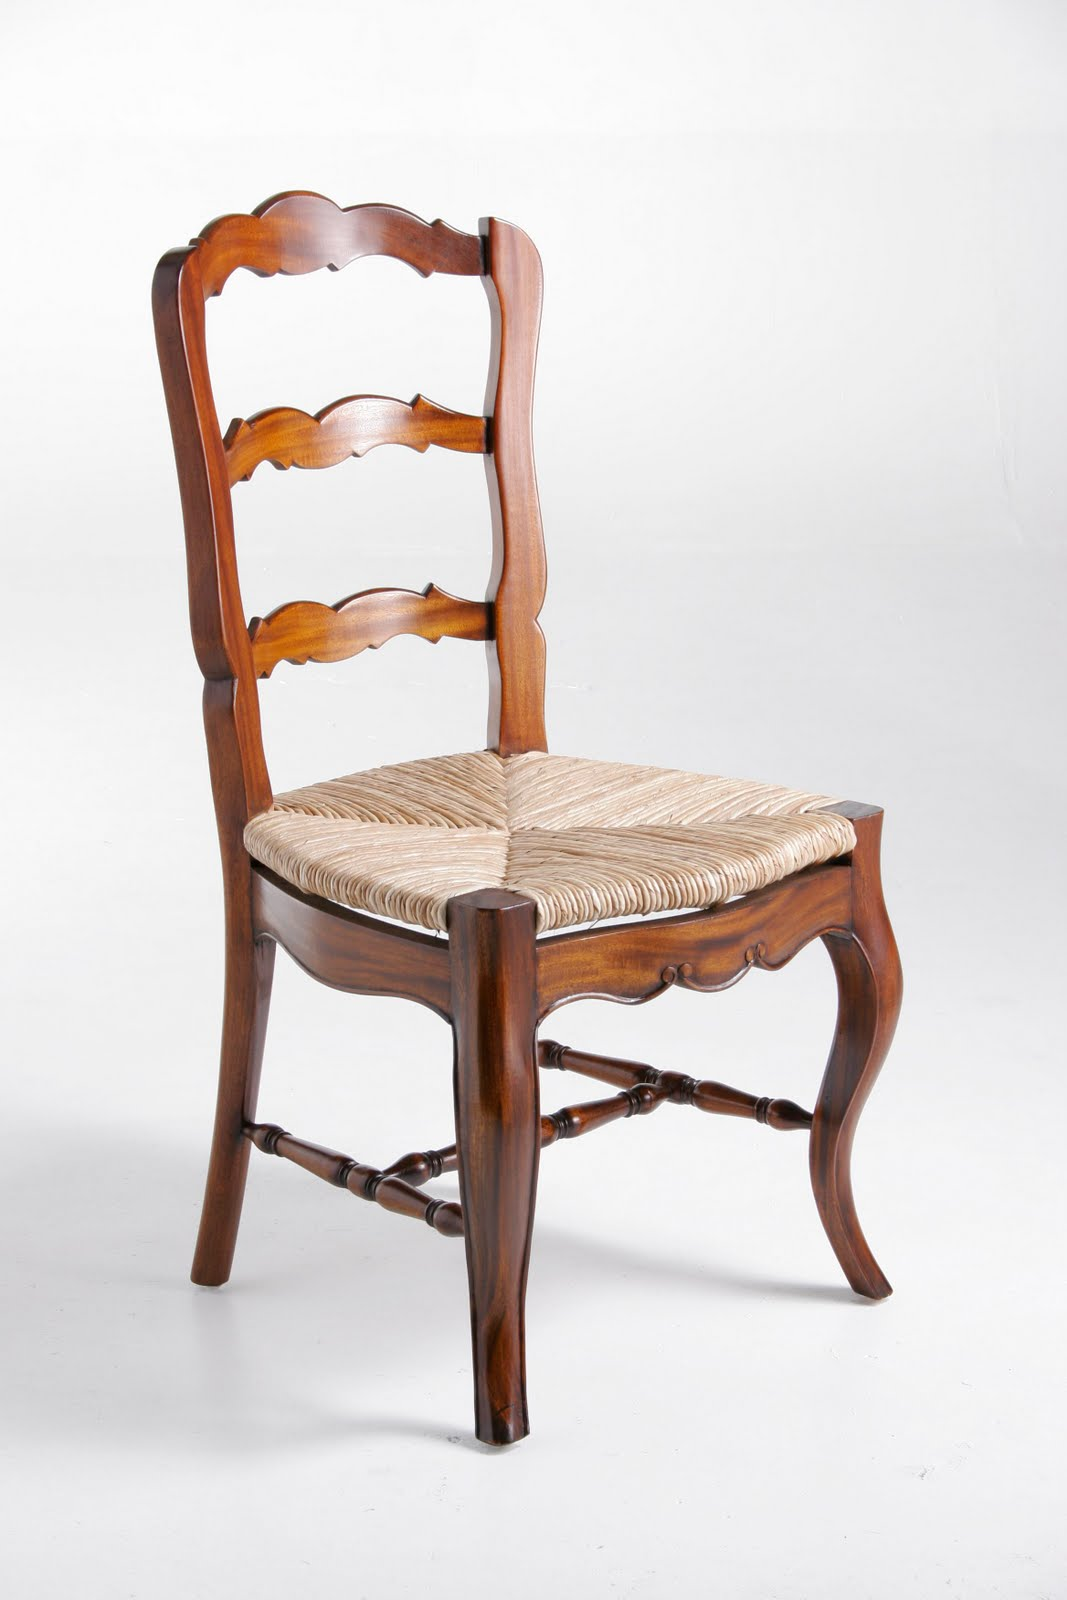 French Provincial Chairs Pictures to Pin on Pinterest ...